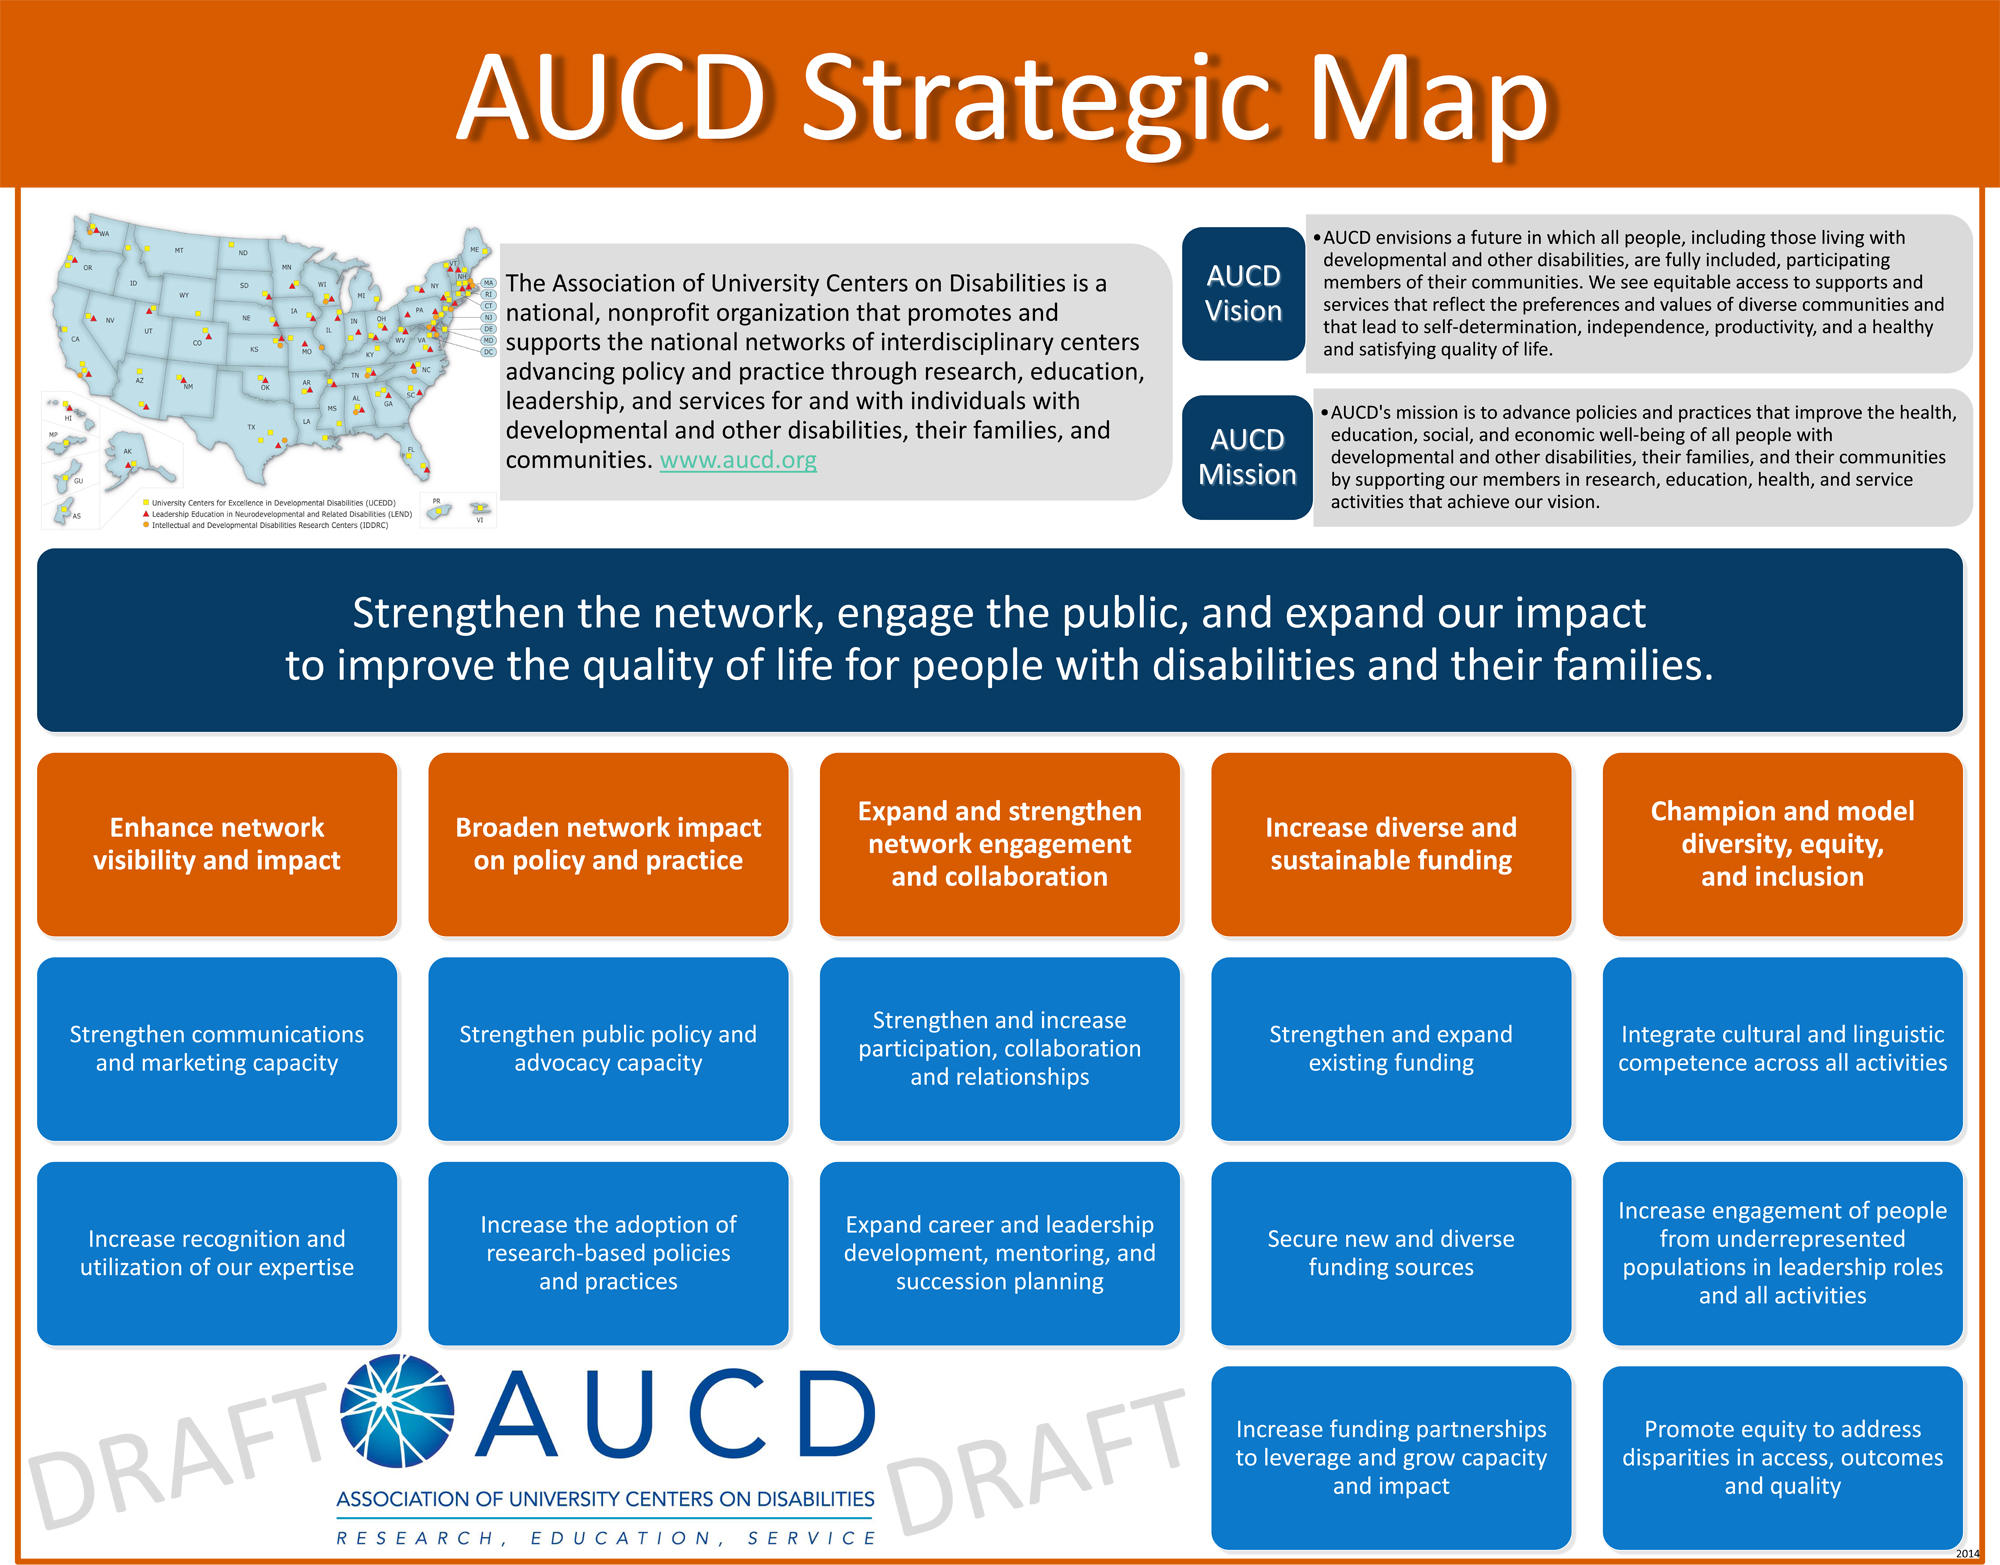 AUCD - AUCD Strategic Map 2014 Map Board Of Directors Network on map of ddos, map of mystique, map of airport, map of mobile, map of zones, map of ports, map of argo, map of stalag 17, map of grid, map of trust, map of a computer, map of life is beautiful, map of apocalypse now, map of sunset boulevard, map of cold mountain, map of around the world in 80 days, map of connect, map of quill, map of halloween, map of pc,